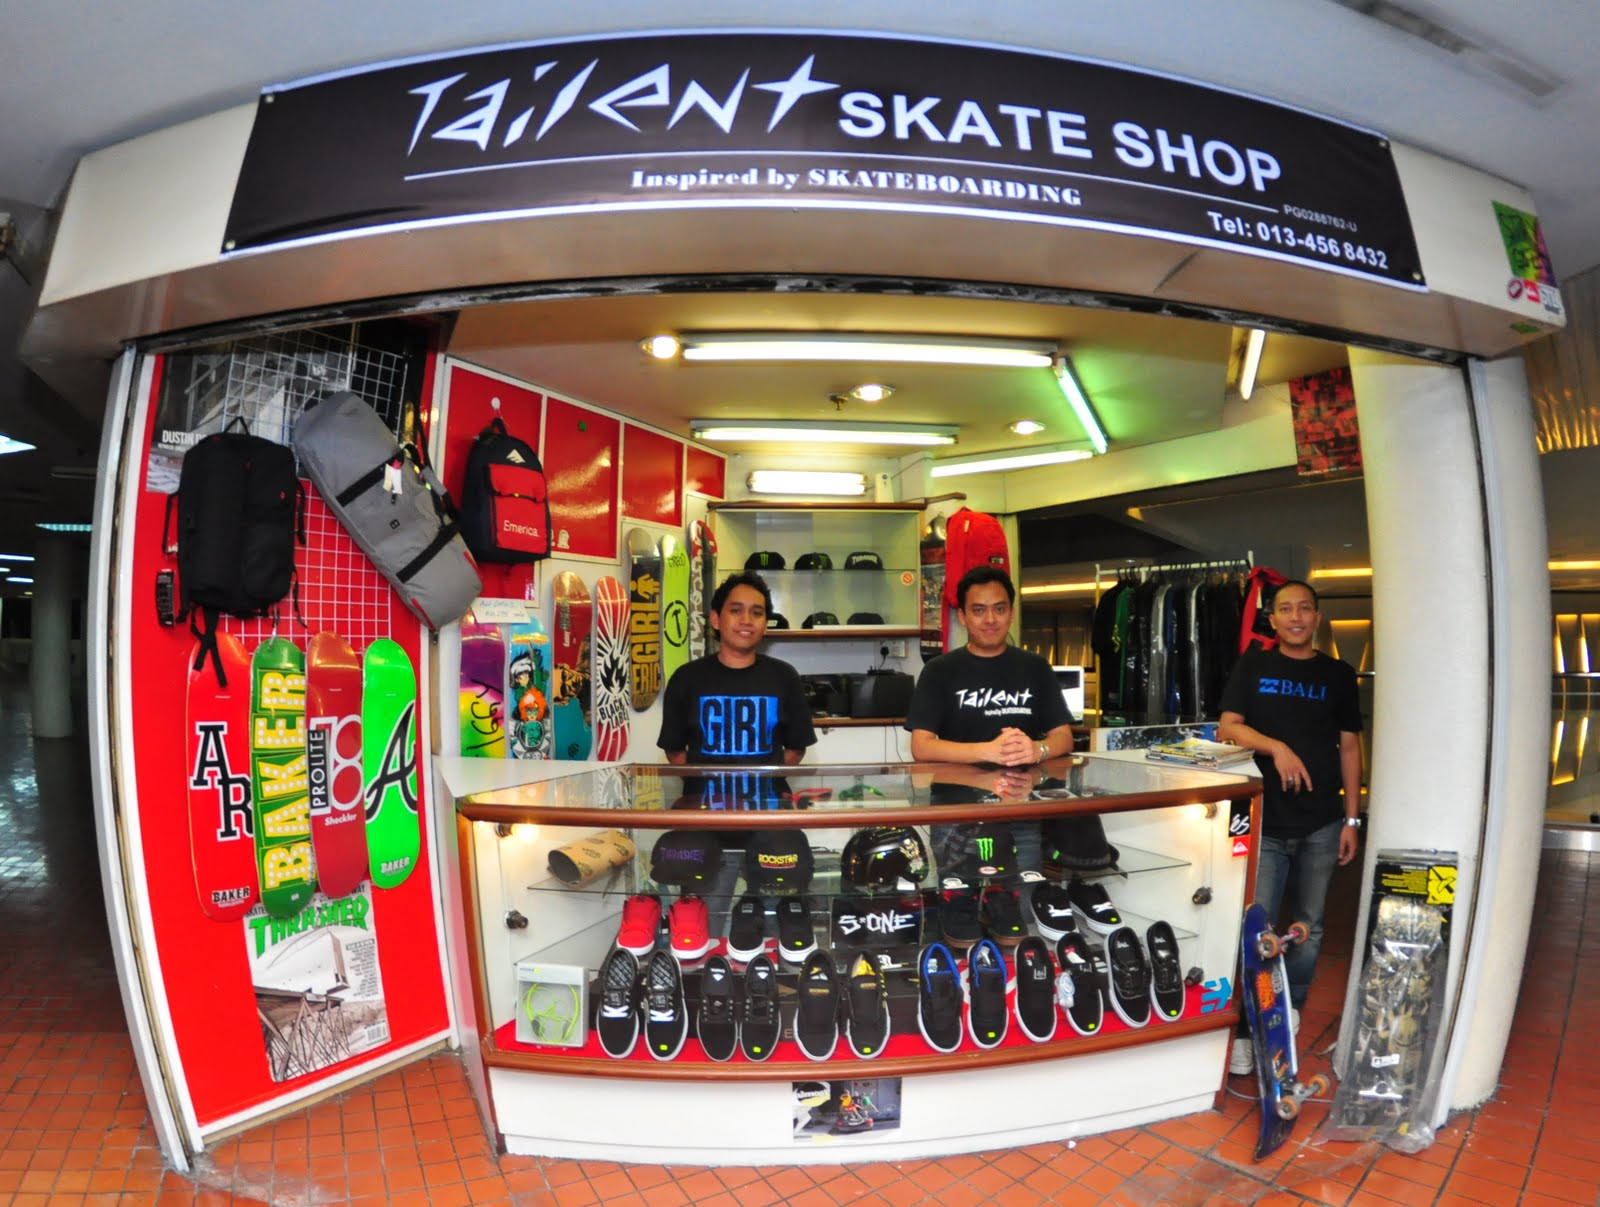 Roller skate shoes penang - All The Way From Penang To Continue Support The Scene So What Are You Waiting For Support Your Local Scene